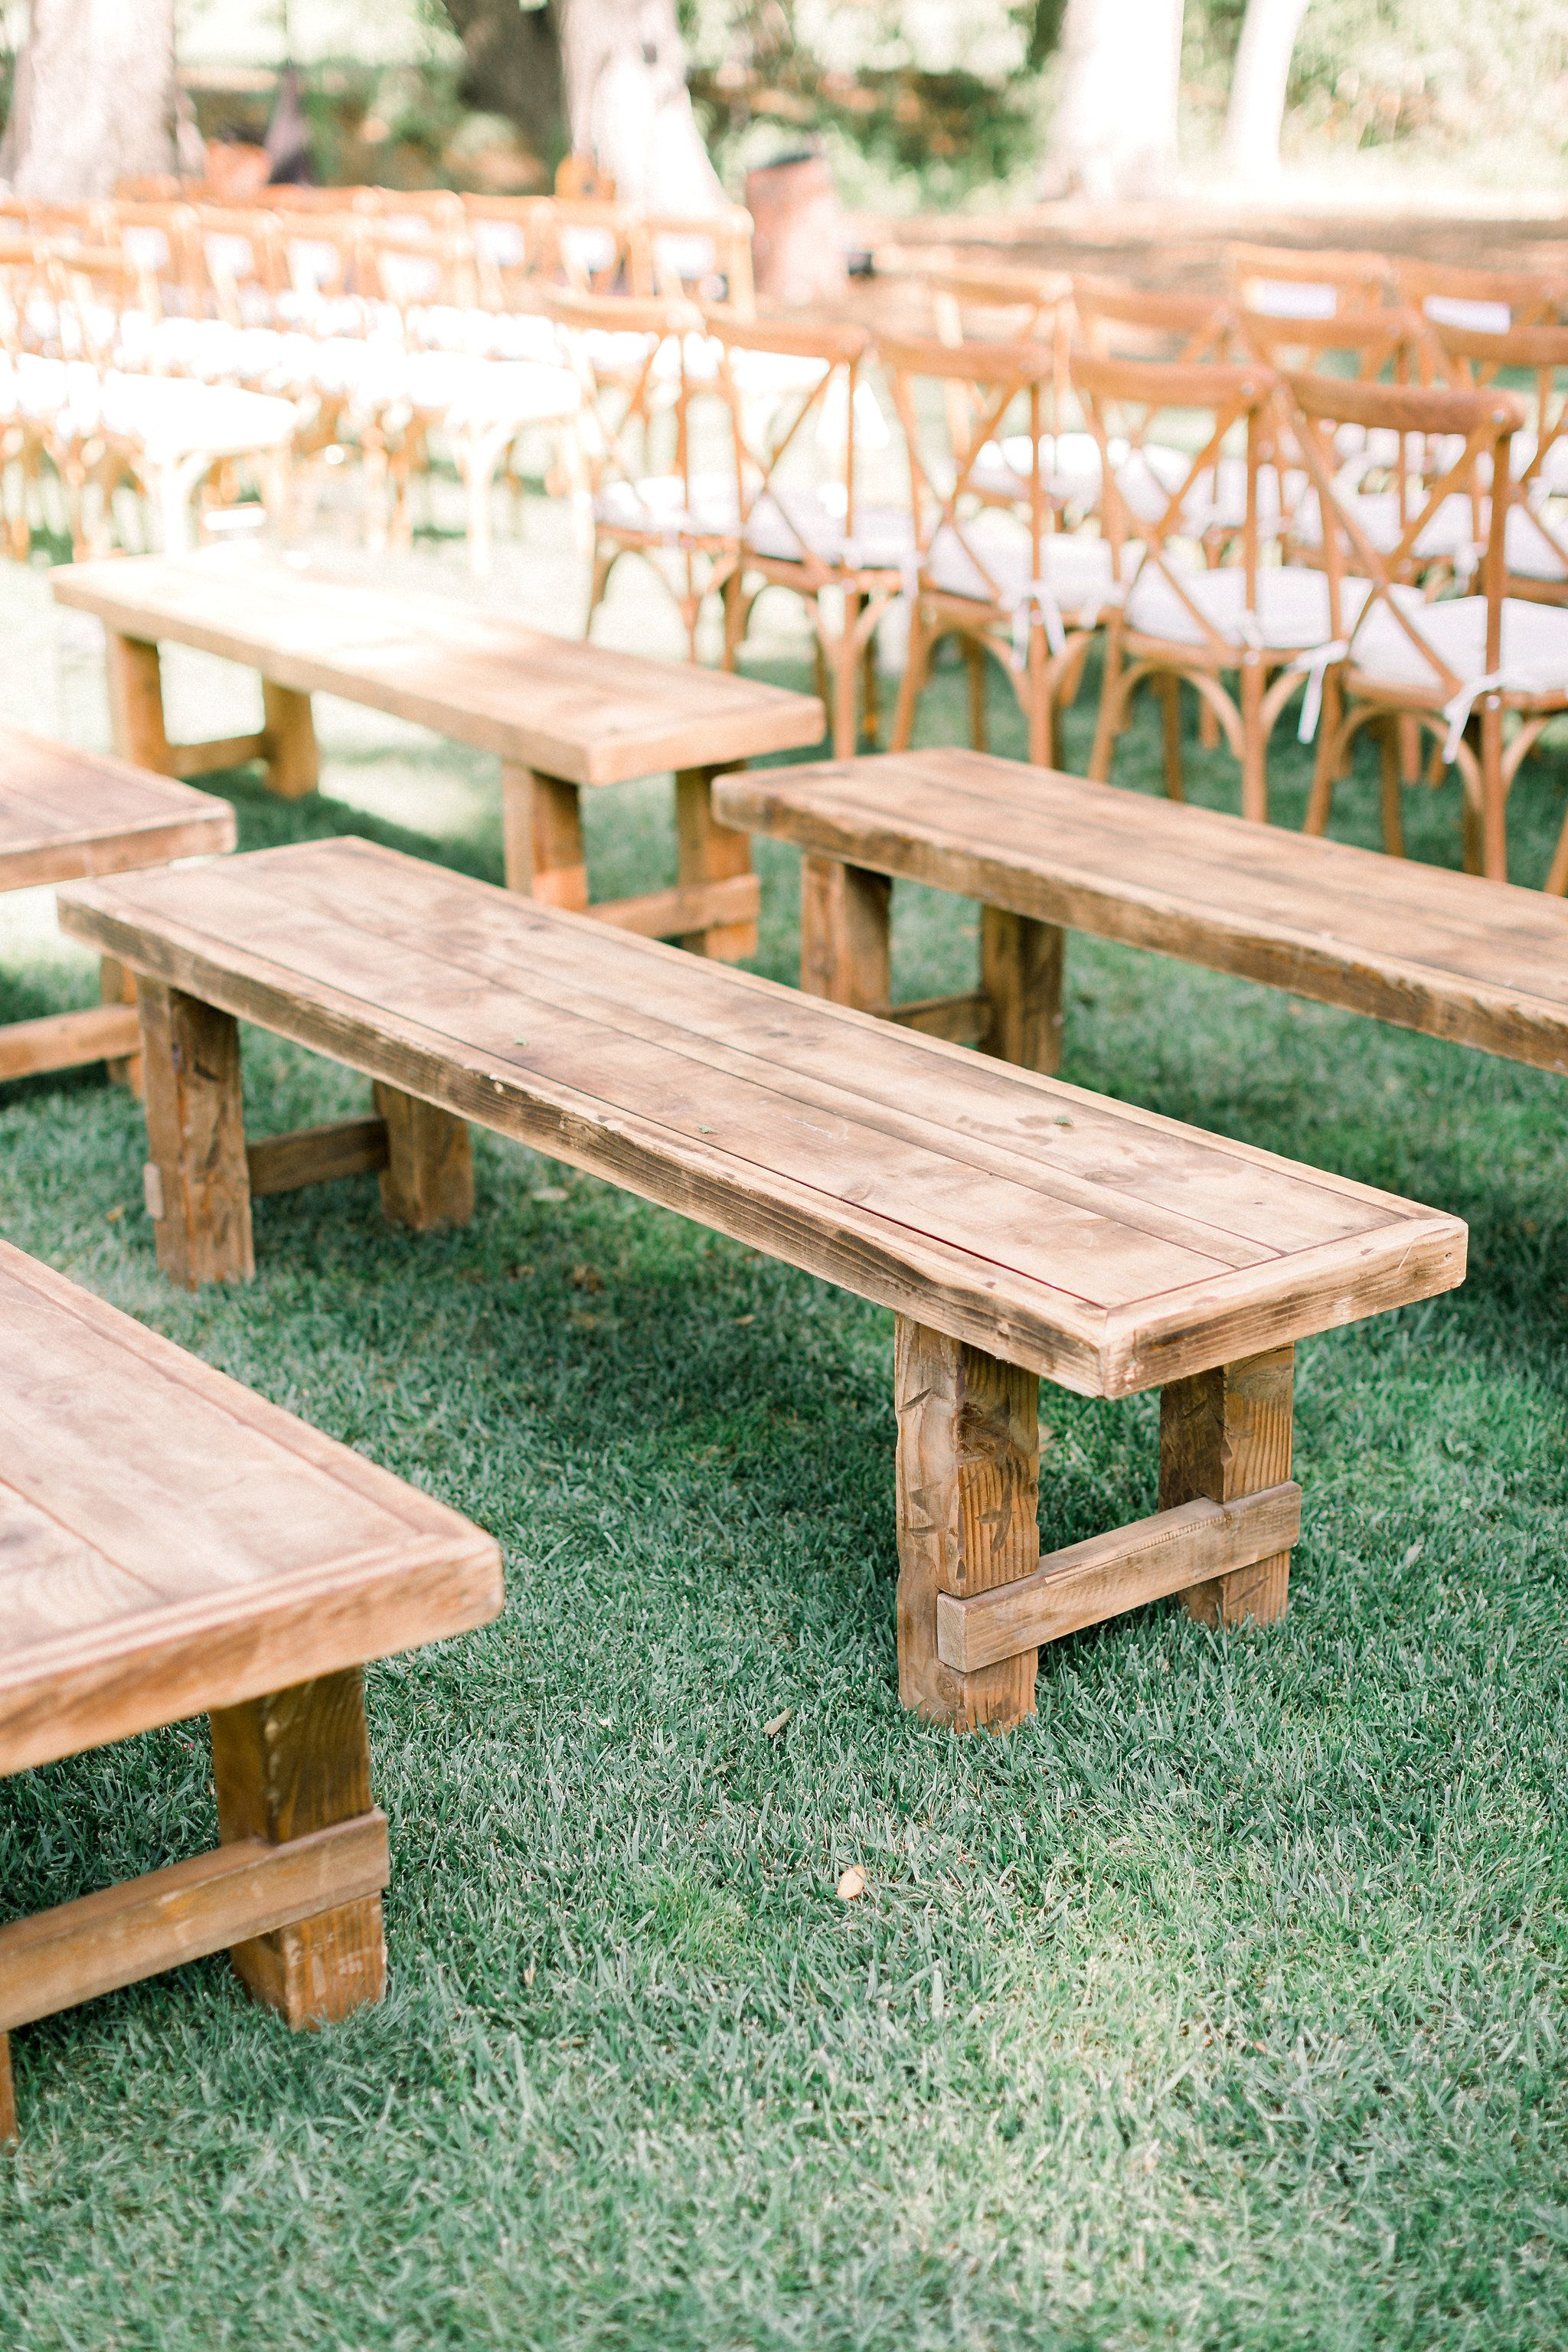 Farm Tables And More San Diego San Diego Wedding Rentals Wedding Ceremony Seating Wed Farm Wedding Ceremony Wedding Bench Seating Wedding Ceremony Seating